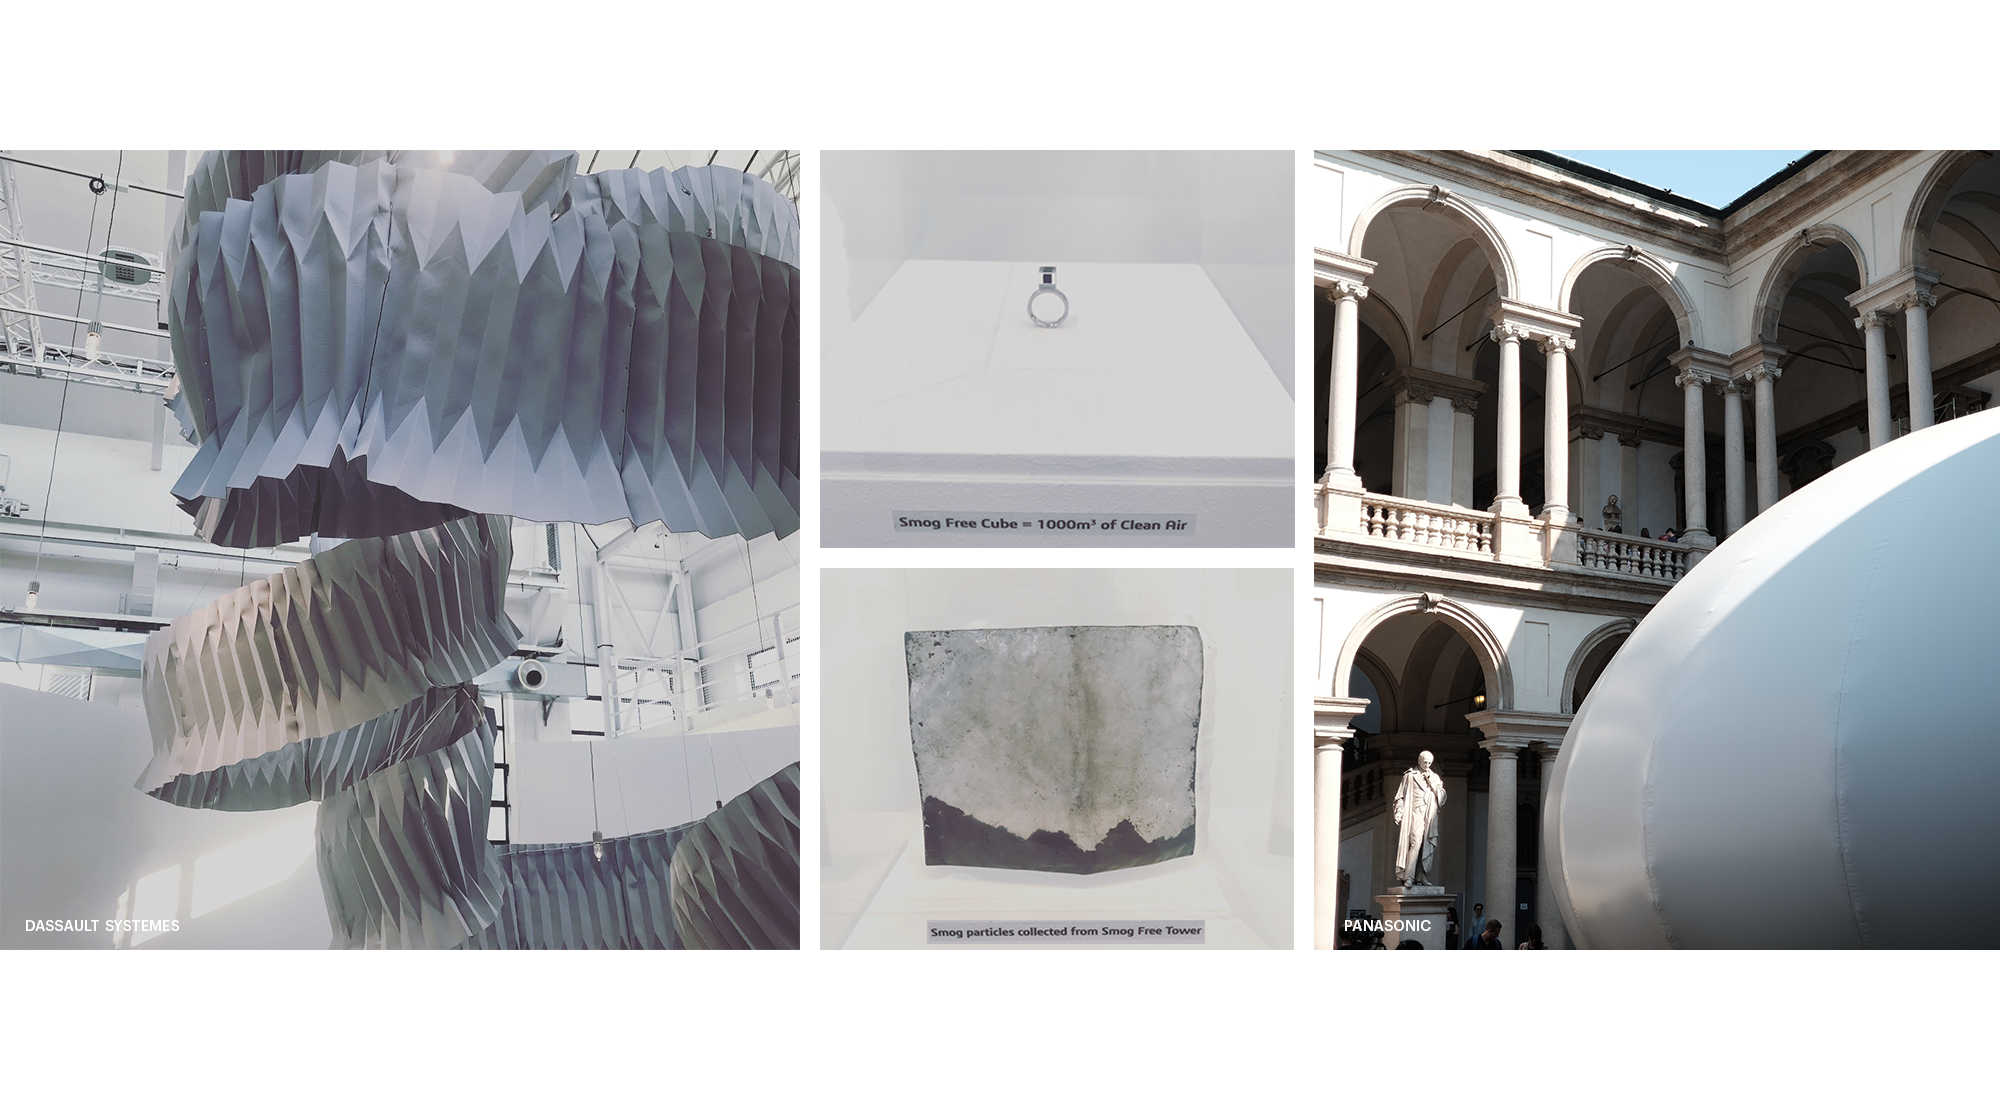 Image Collage Milan Design Week 2018 showing sculpture, cube, statue, building